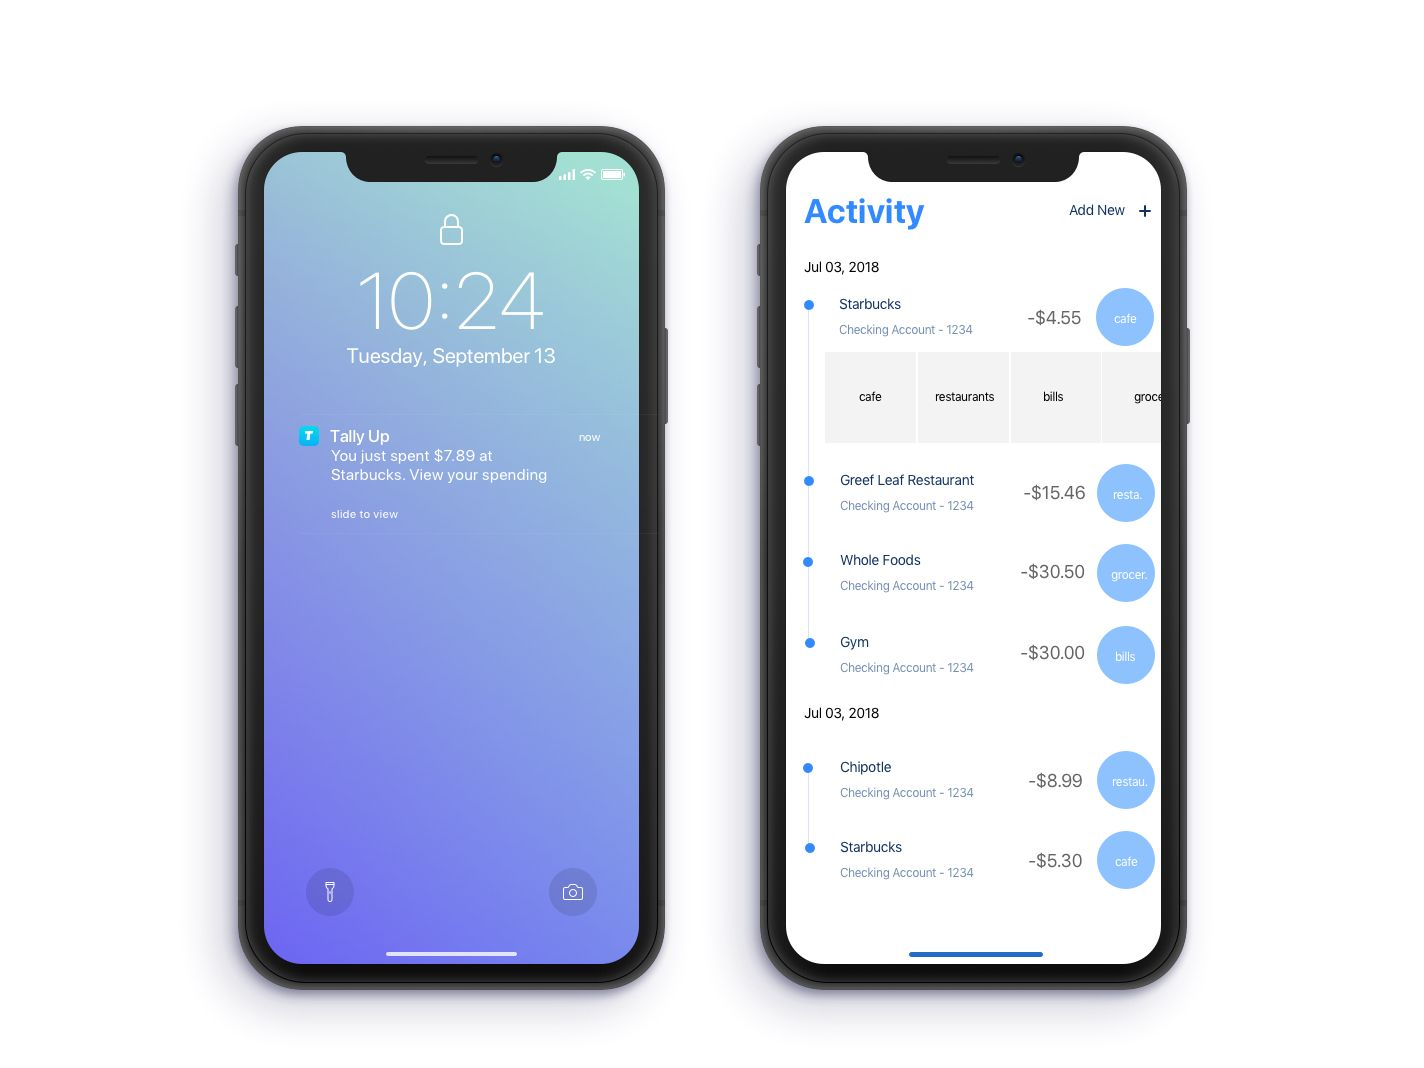 Tally Up Your Spending App Concept